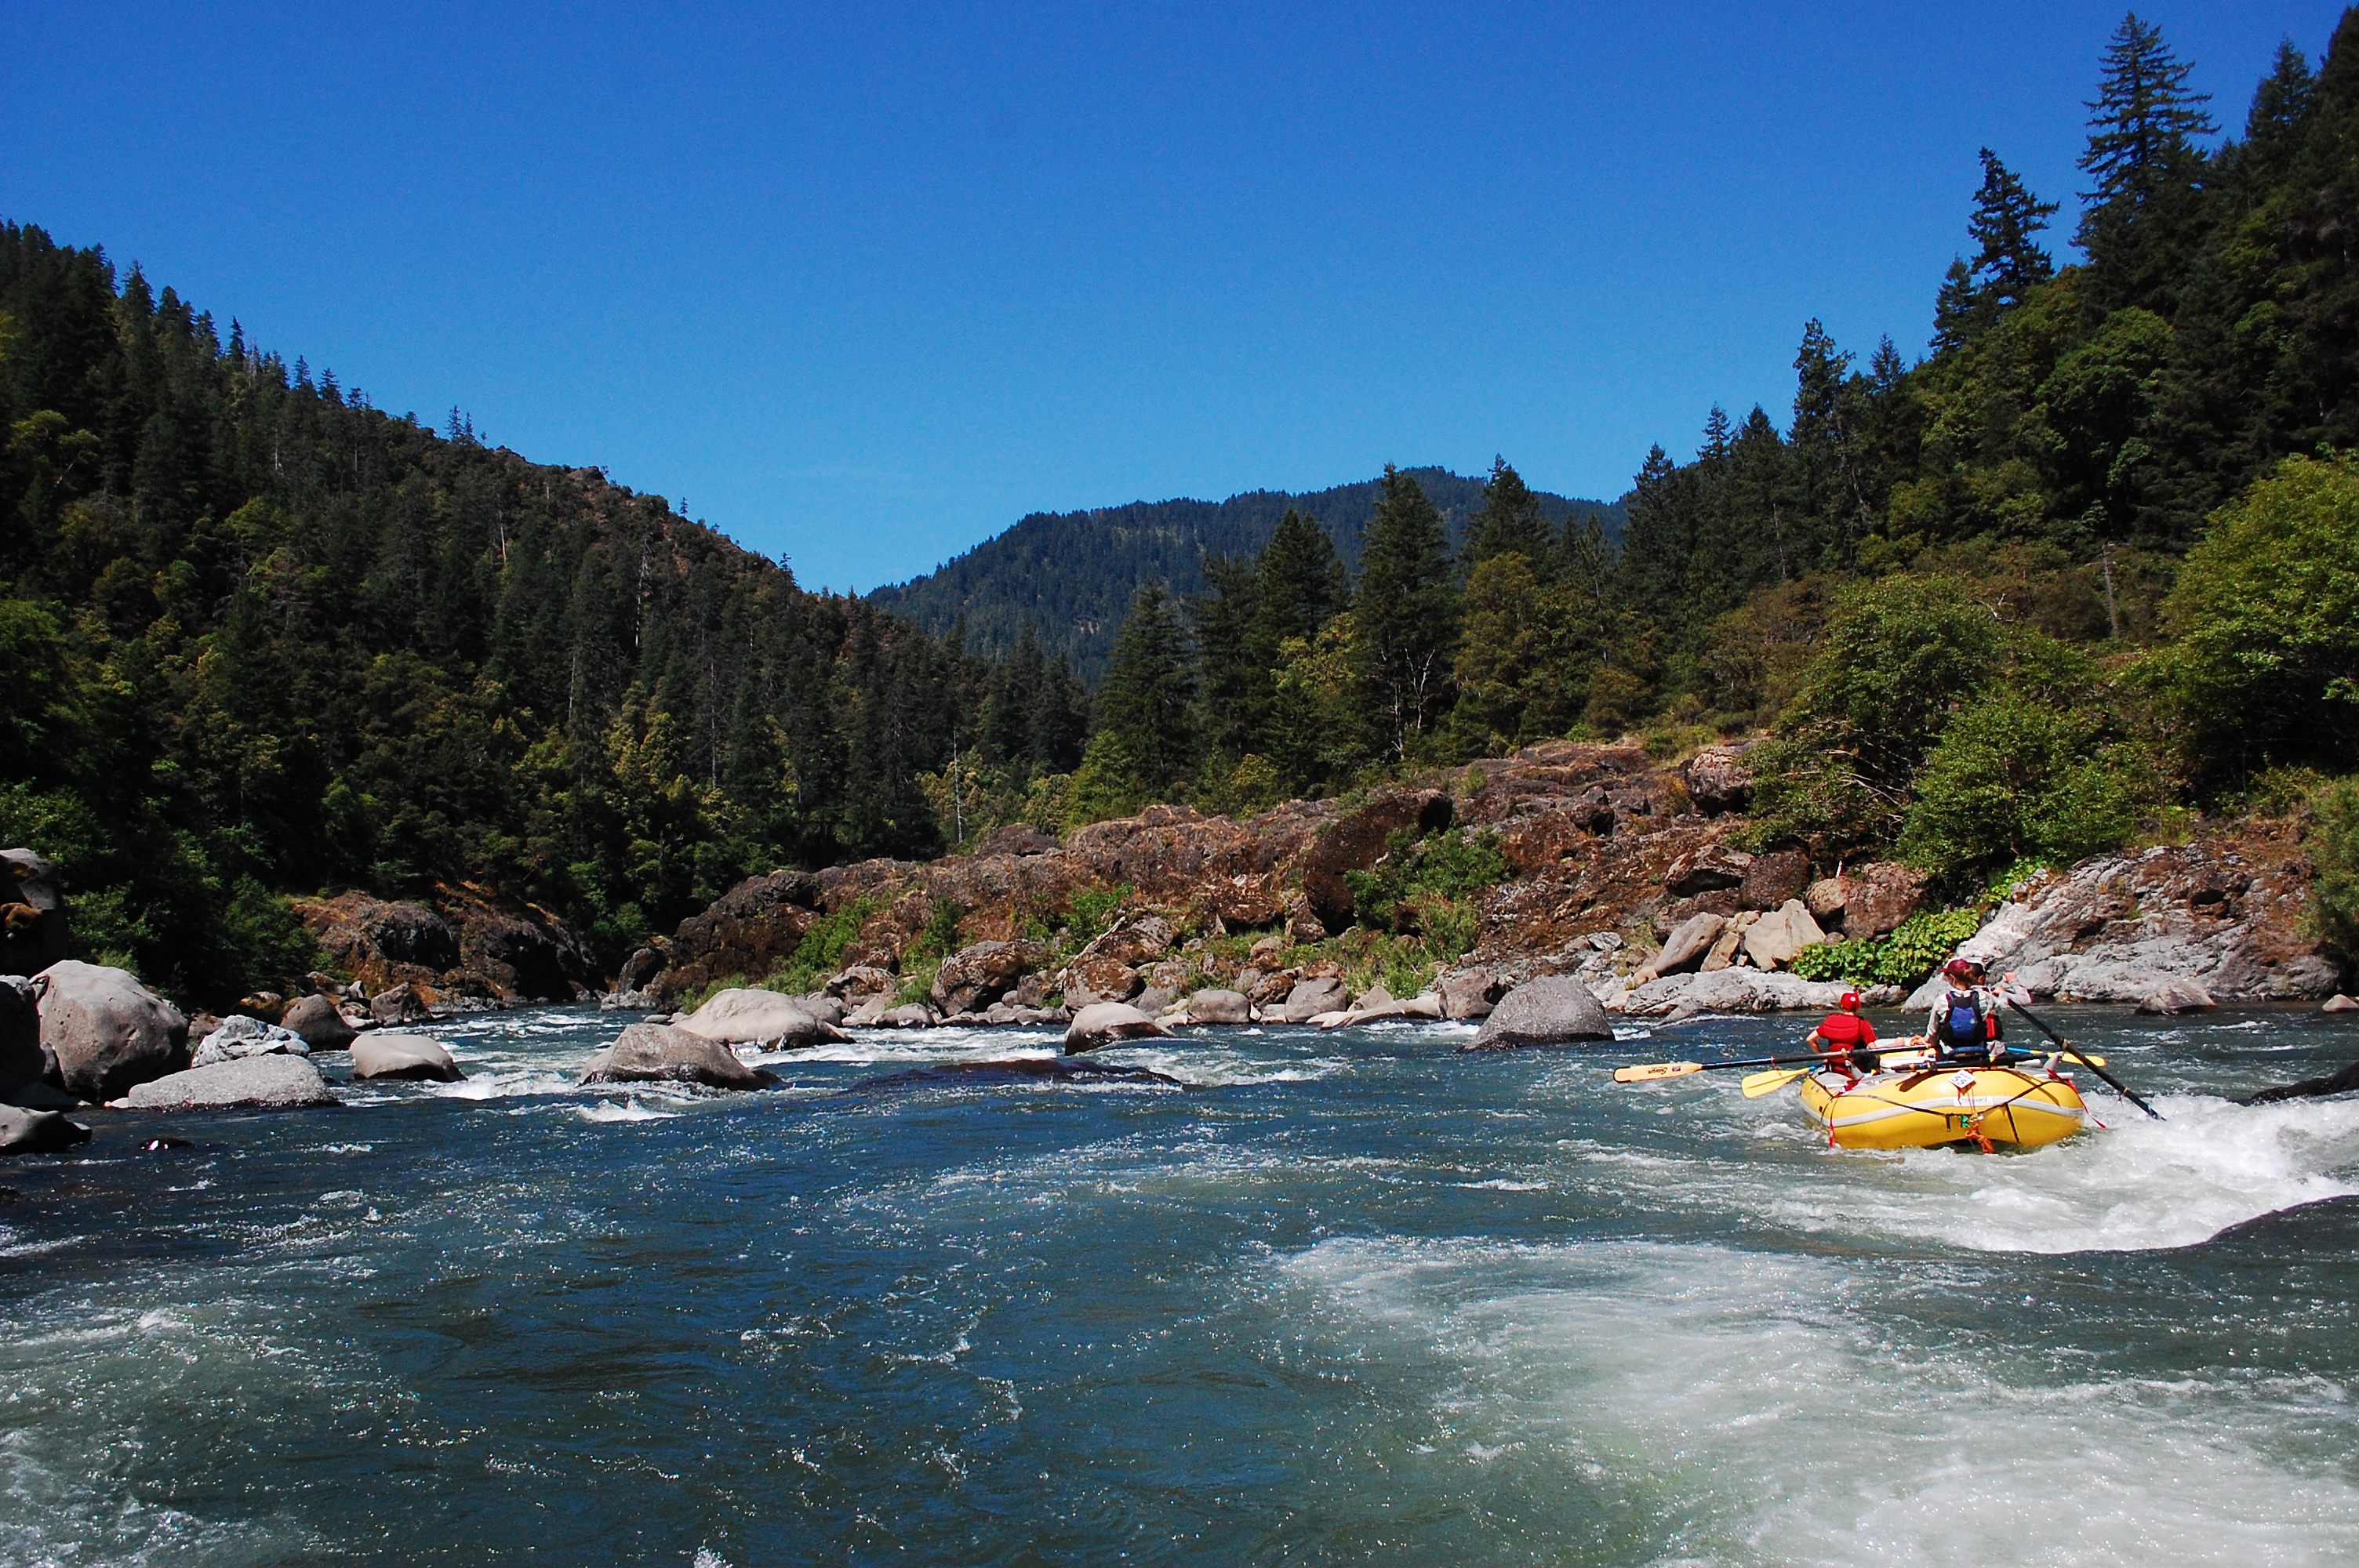 Getting through Blossom Bar, Rogue River